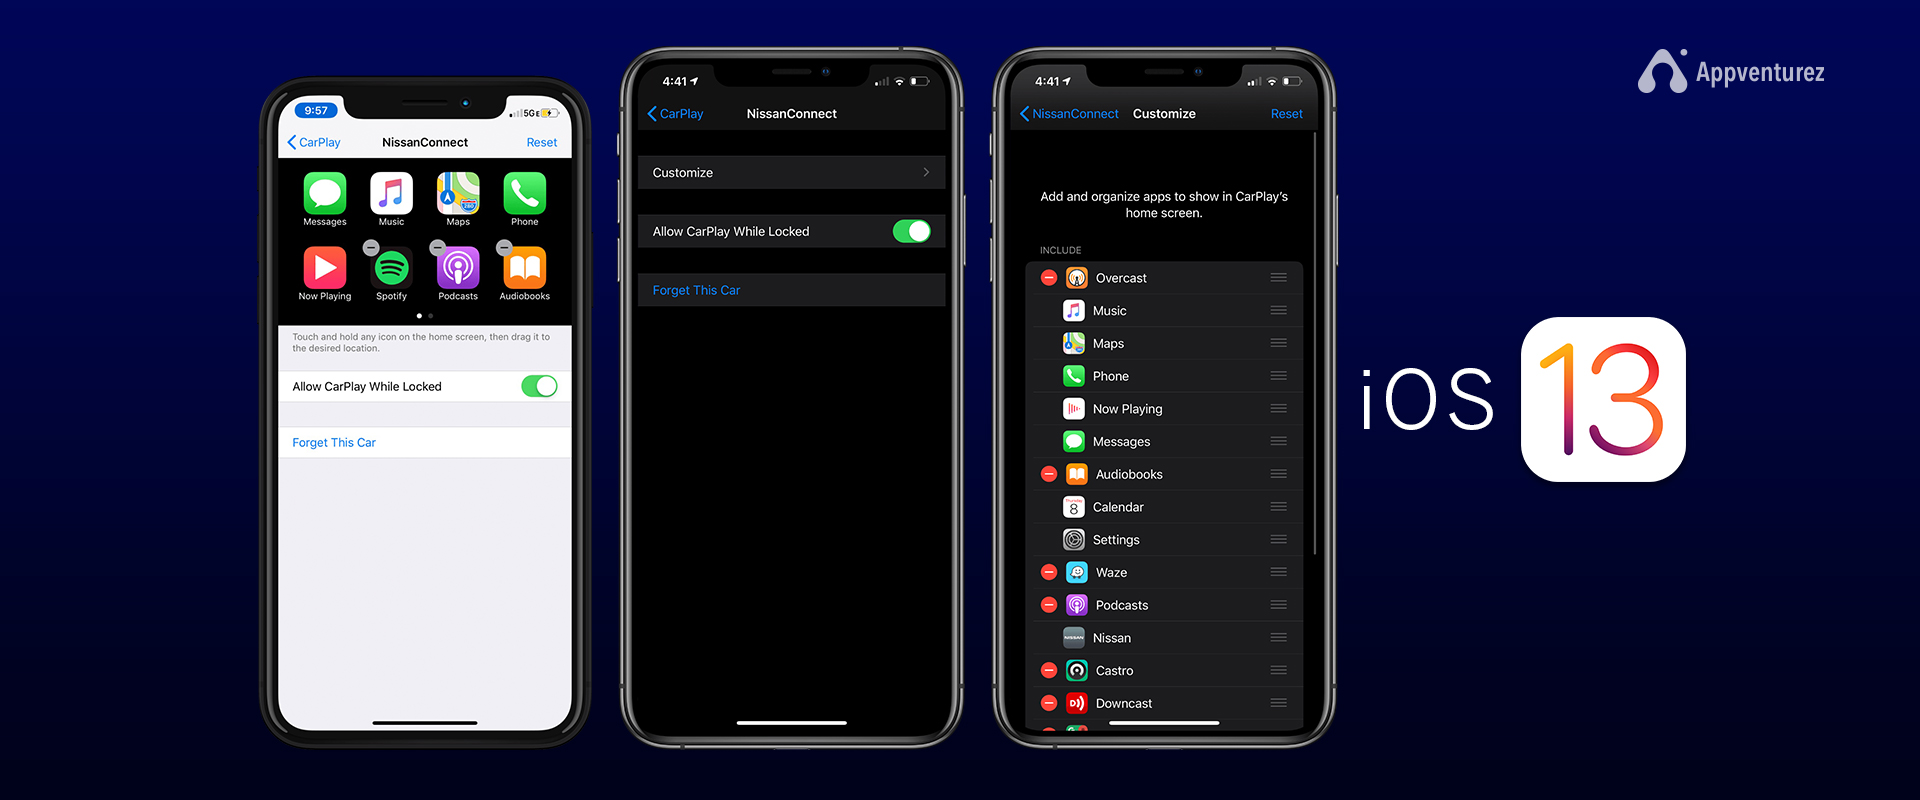 iOS 13 updated features